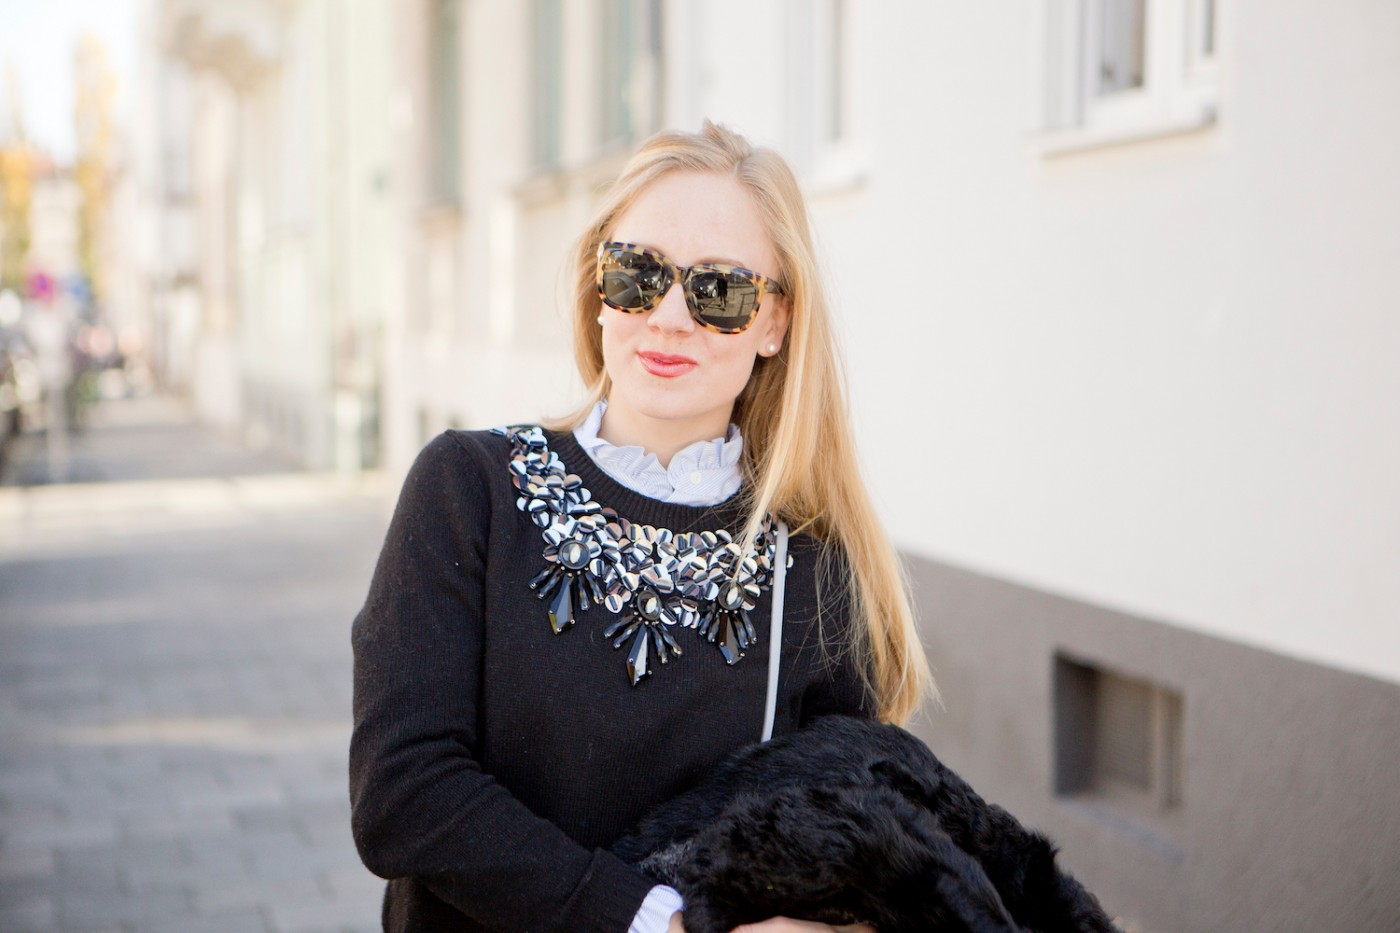 Claudie Pierlot blouse, havanna spotted sunglasses, how to wear a blouse, college look, München Modeblog, German Fashion Blog, Fashionblogger, new trends